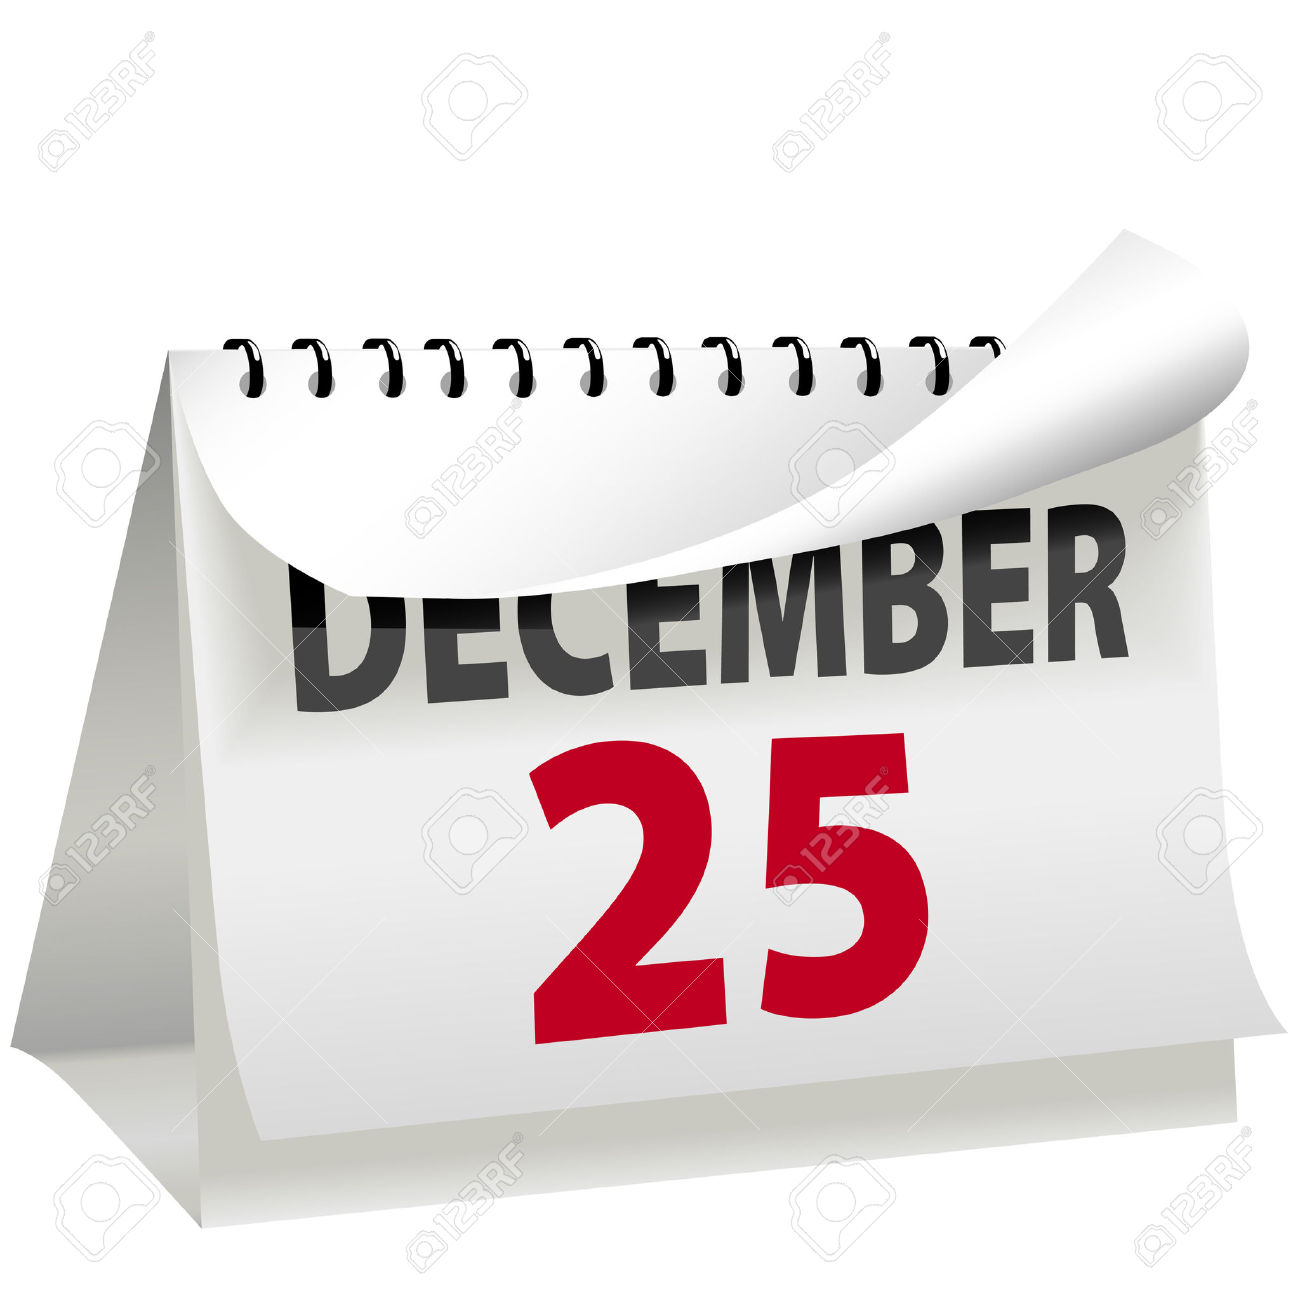 A Calendar Turns A Page To Change To DECEMBER 25 Christmas Day.